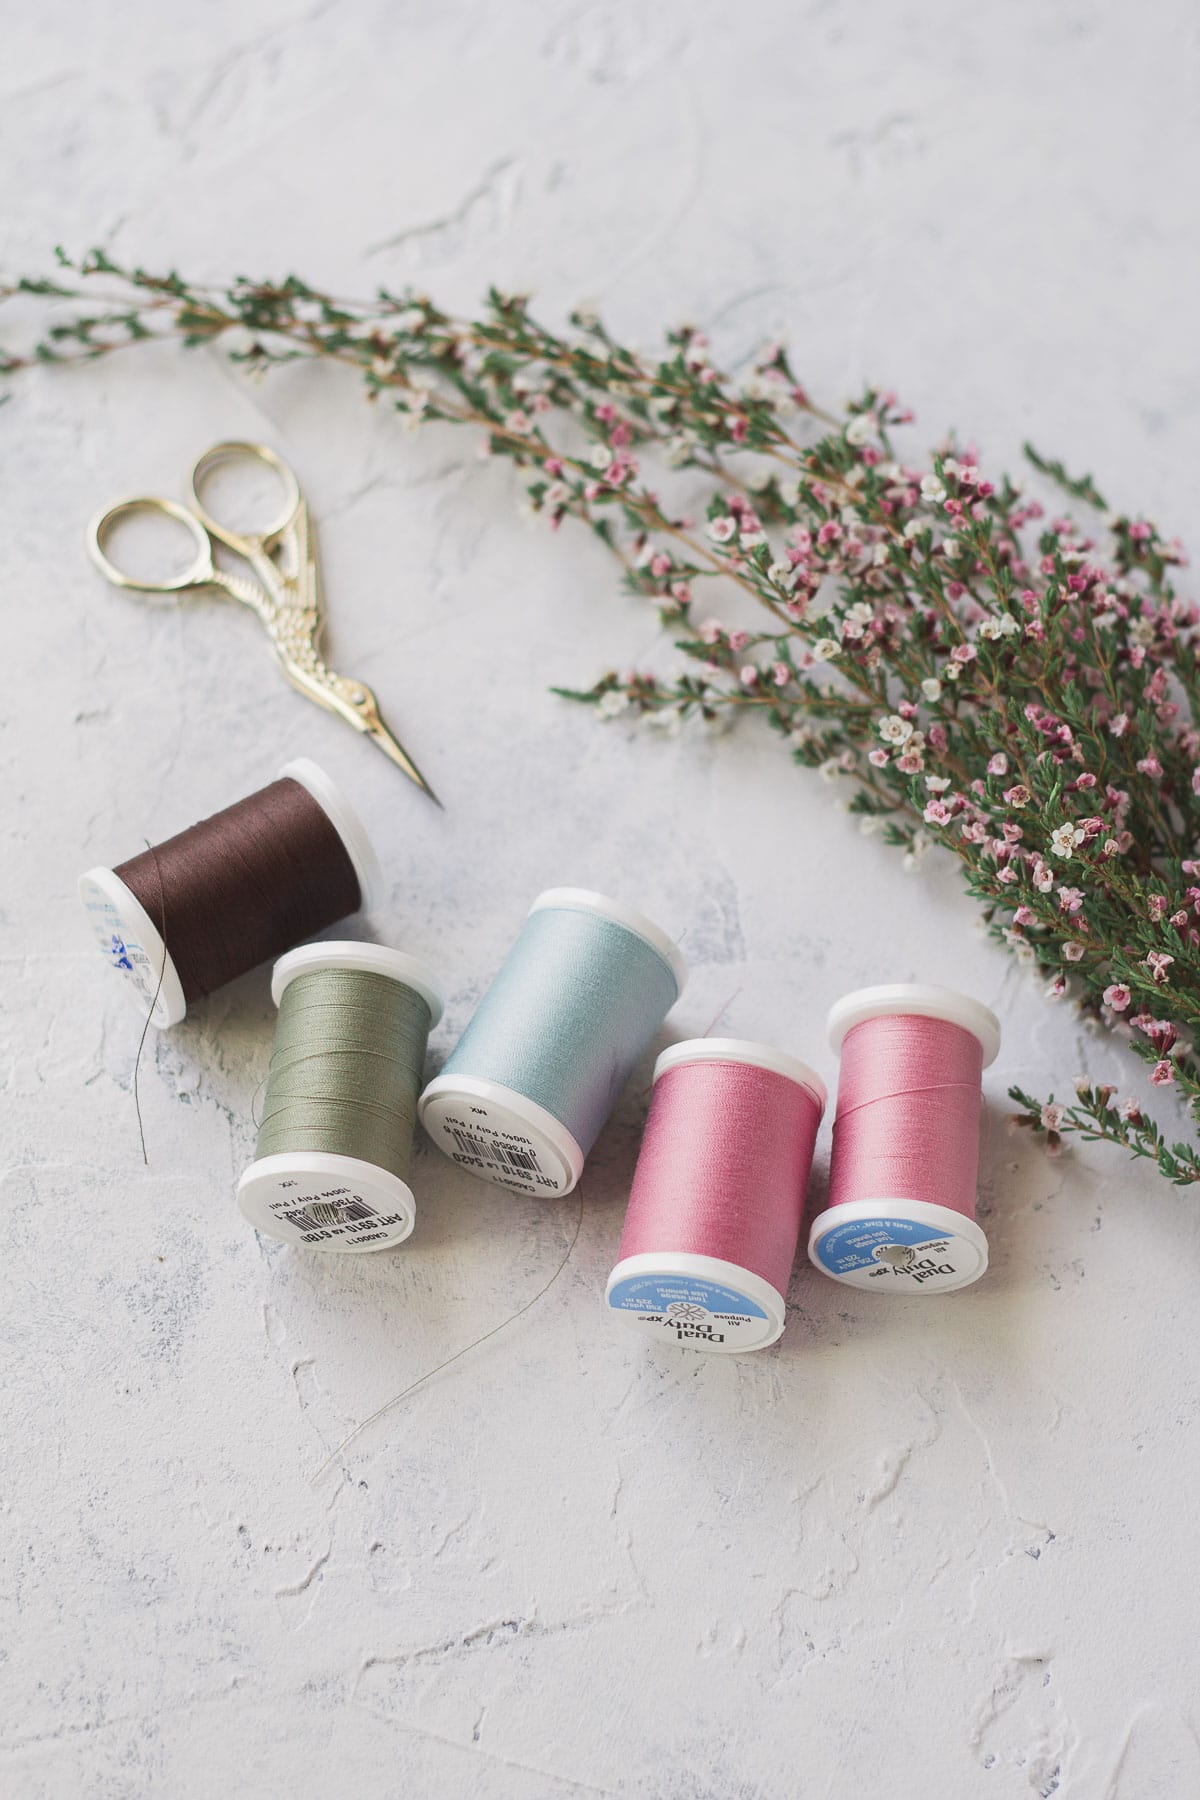 Sewing thread, embroidery scissors, and a spray of pink flowers on a textured background.